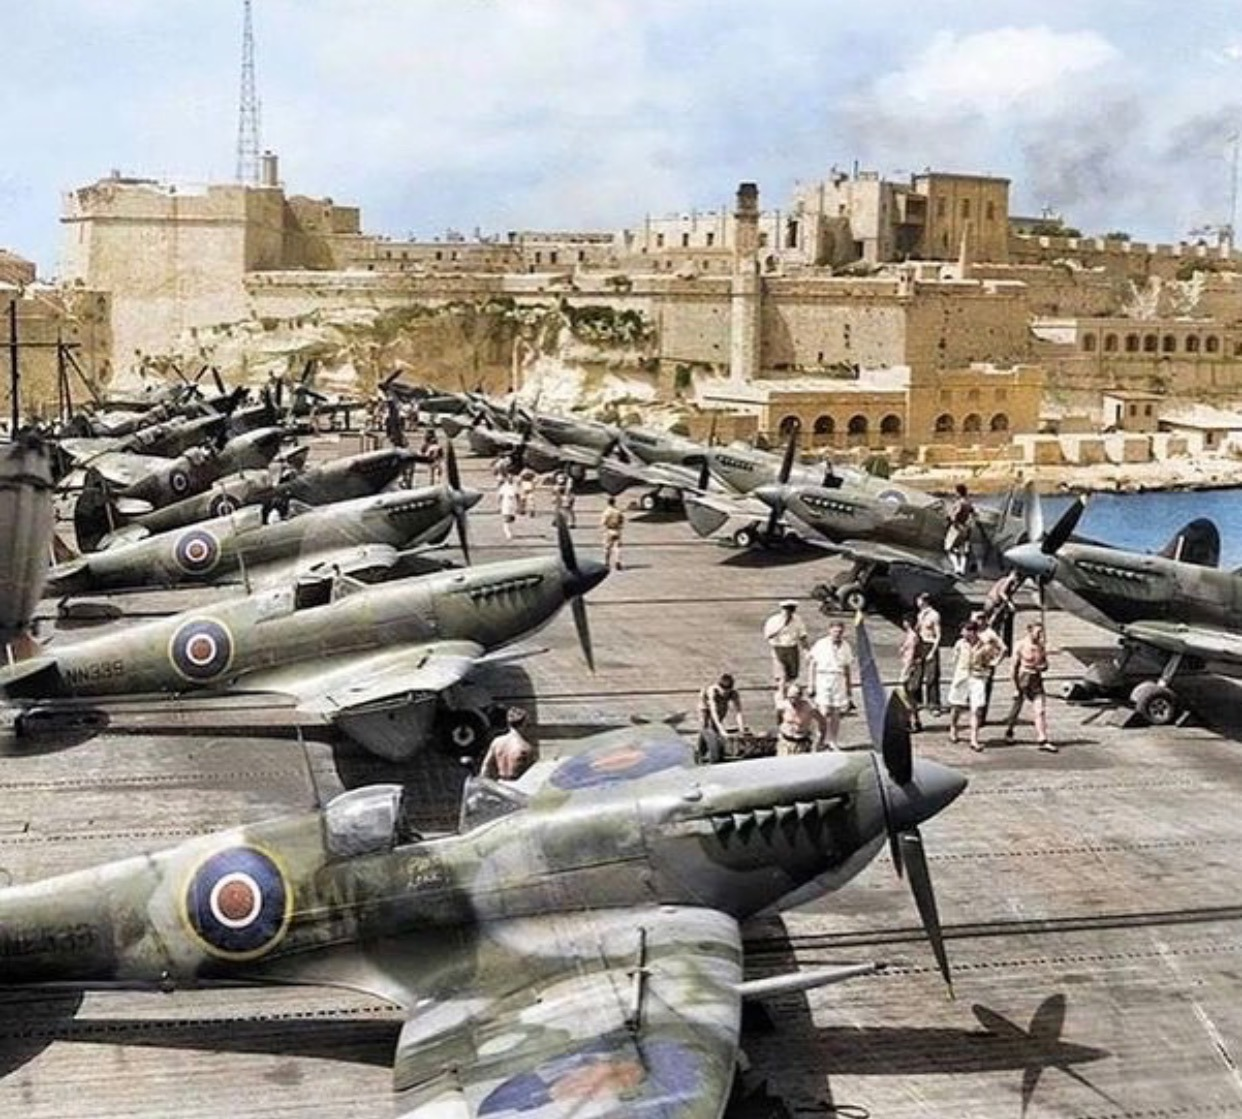 British Spitfires in Malta and ready for action, 1942